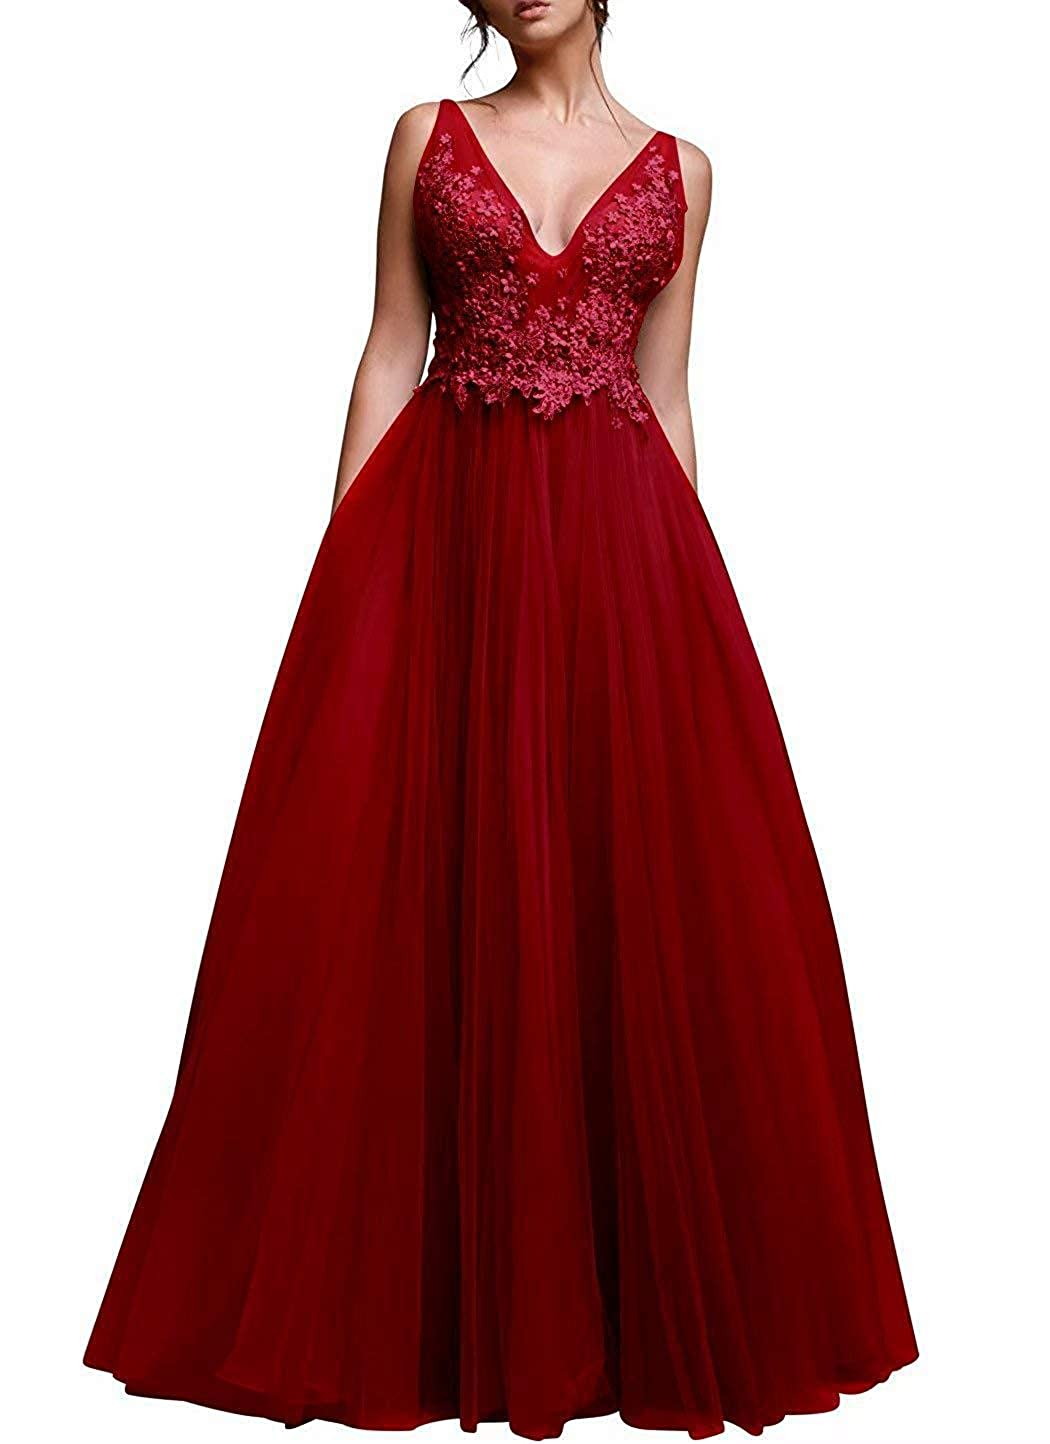 Dark Red Vimans Women's Long Tulle Prom Dresses Aline Beading Bridesmaid Party Dress P09